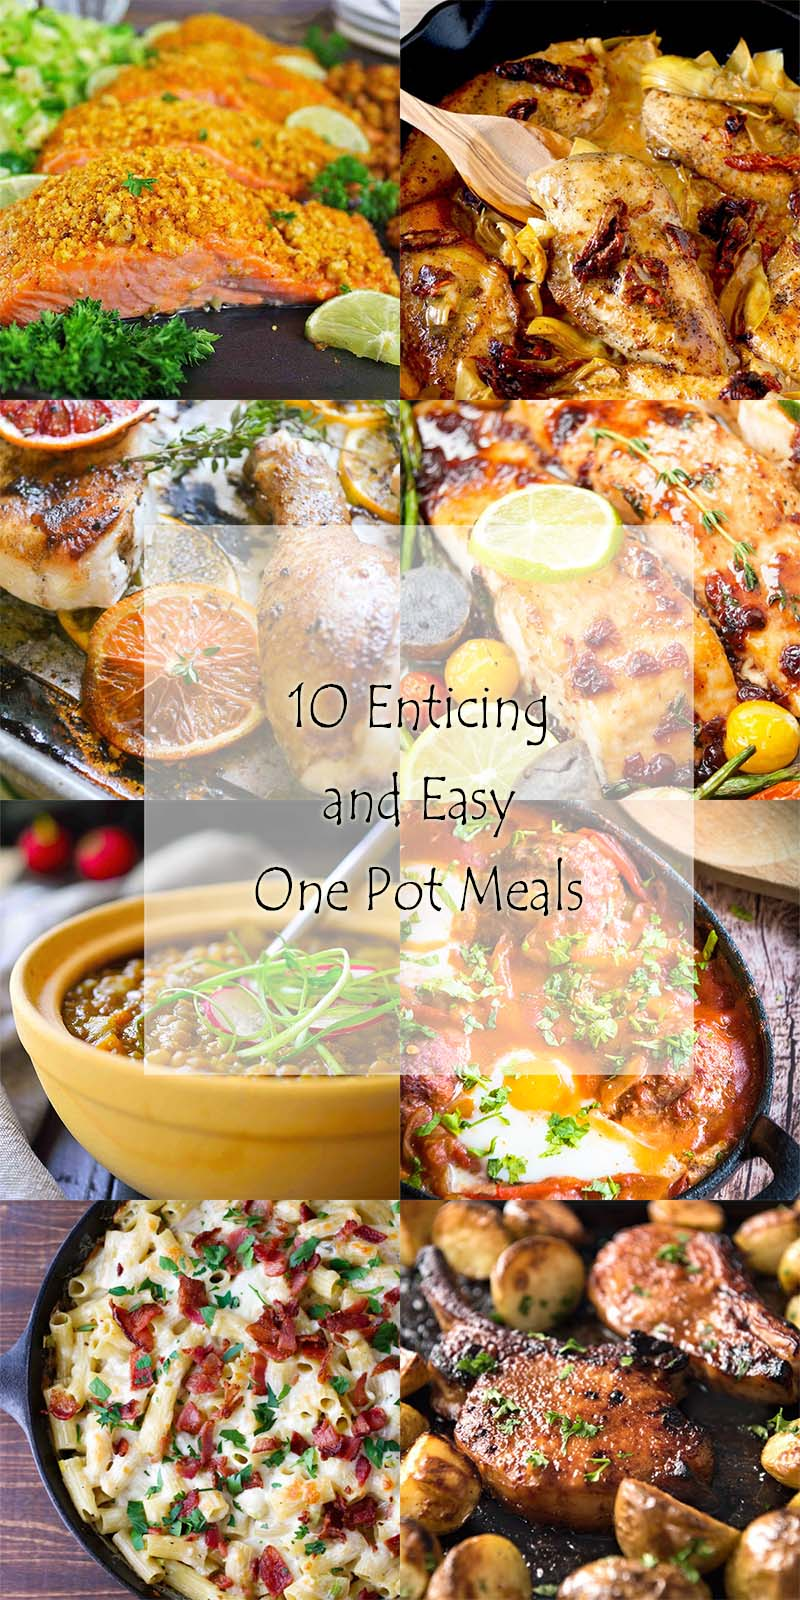 Looking for a quick dinner? Here is a roundup of 10 tasty and easy one pot meals, including soup, skillet sautes and sheet pan dinners.   justalittlebitofbacon.com